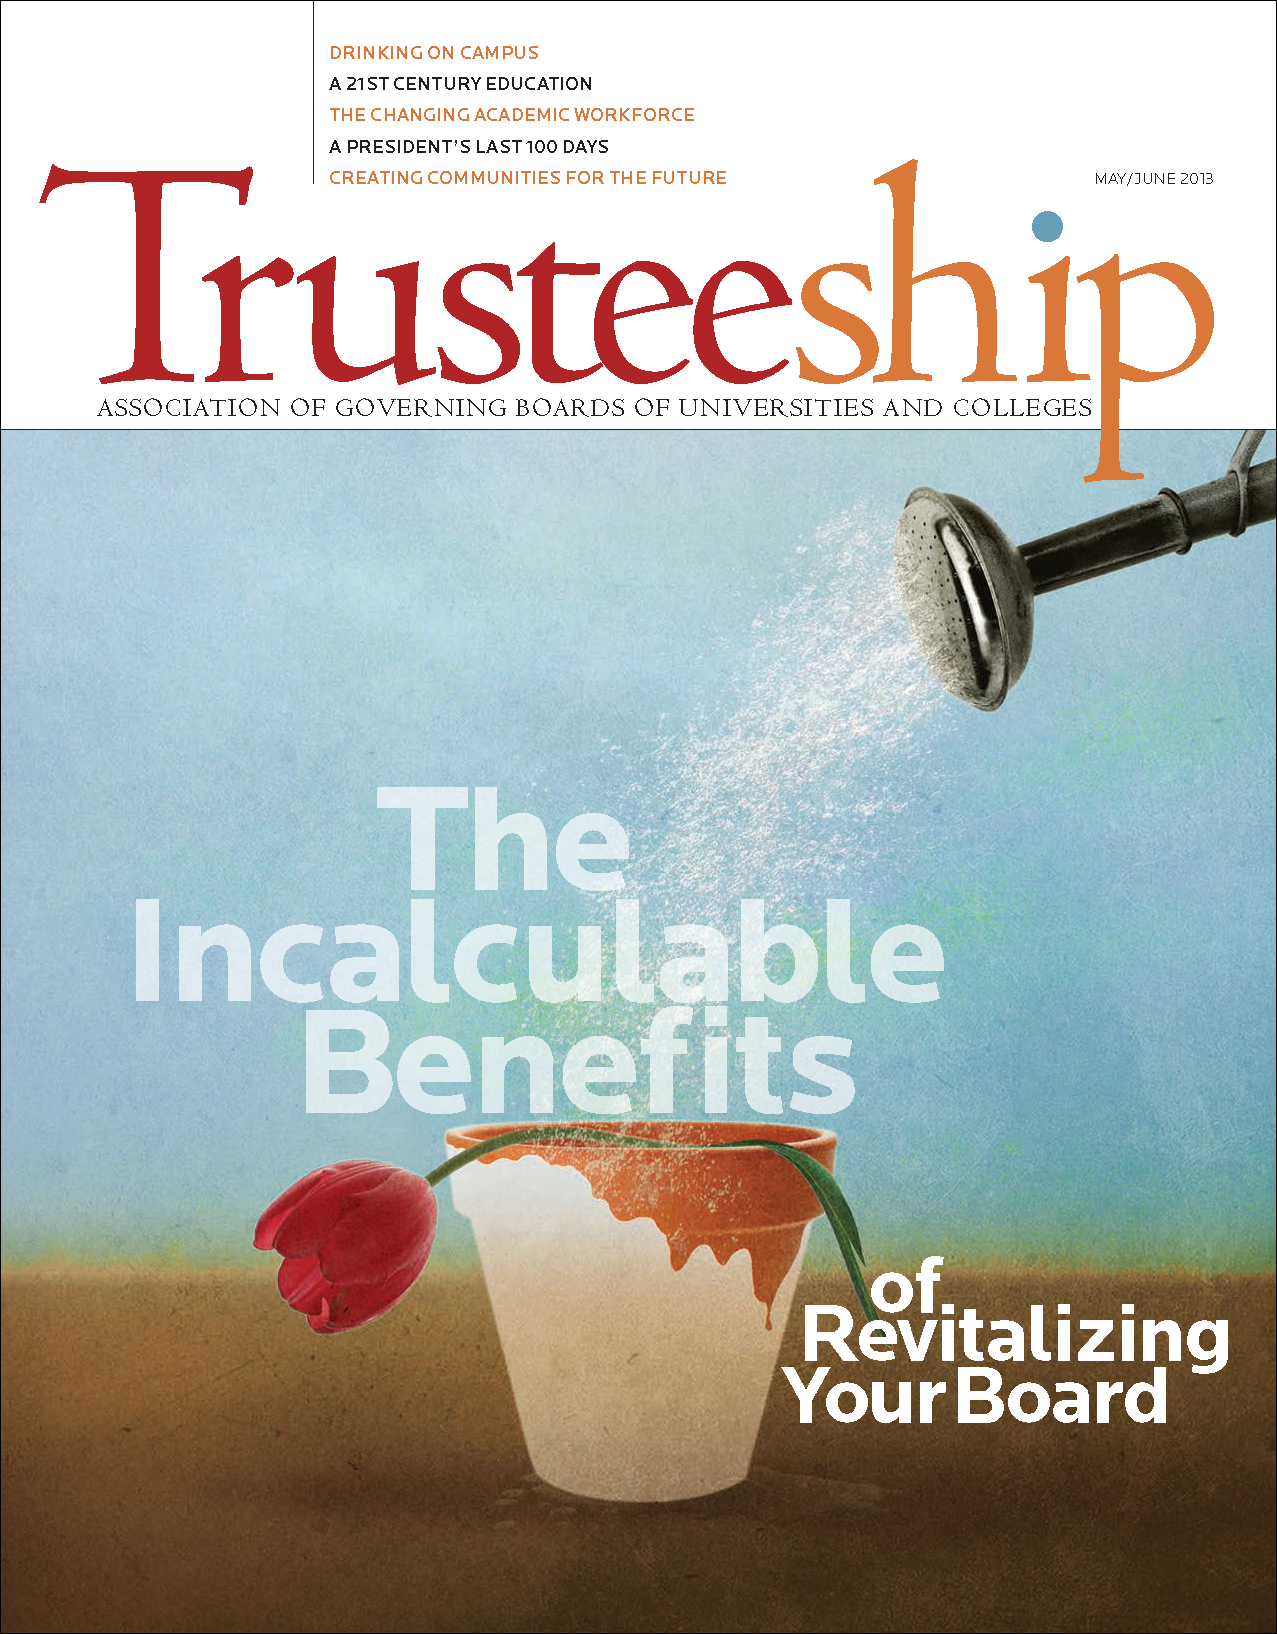 Trusteeship Issue: The Incalculable Benefits of Revitalizing Your Board - May/June 2013